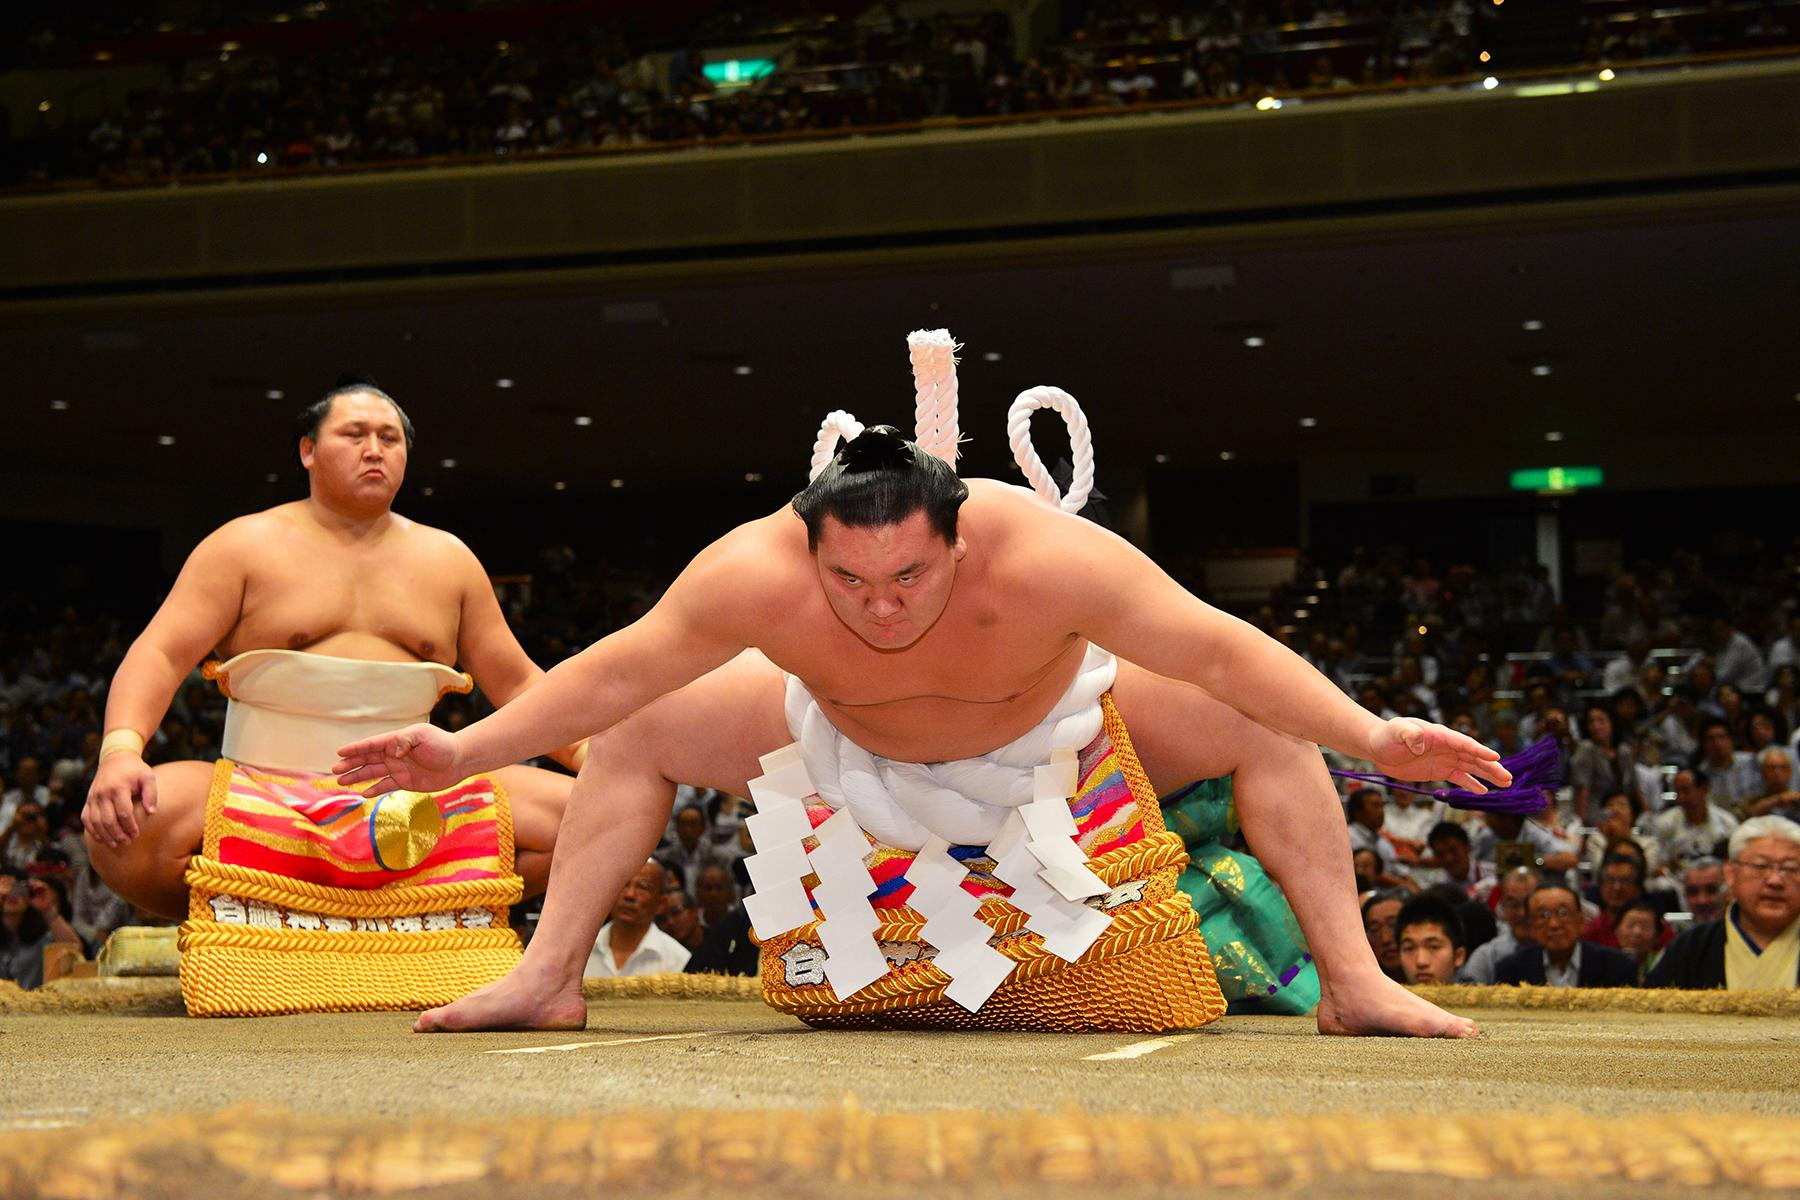 1.Unique-Hotel-Experiences-Eat-With-Sumo-Wrestlers-1